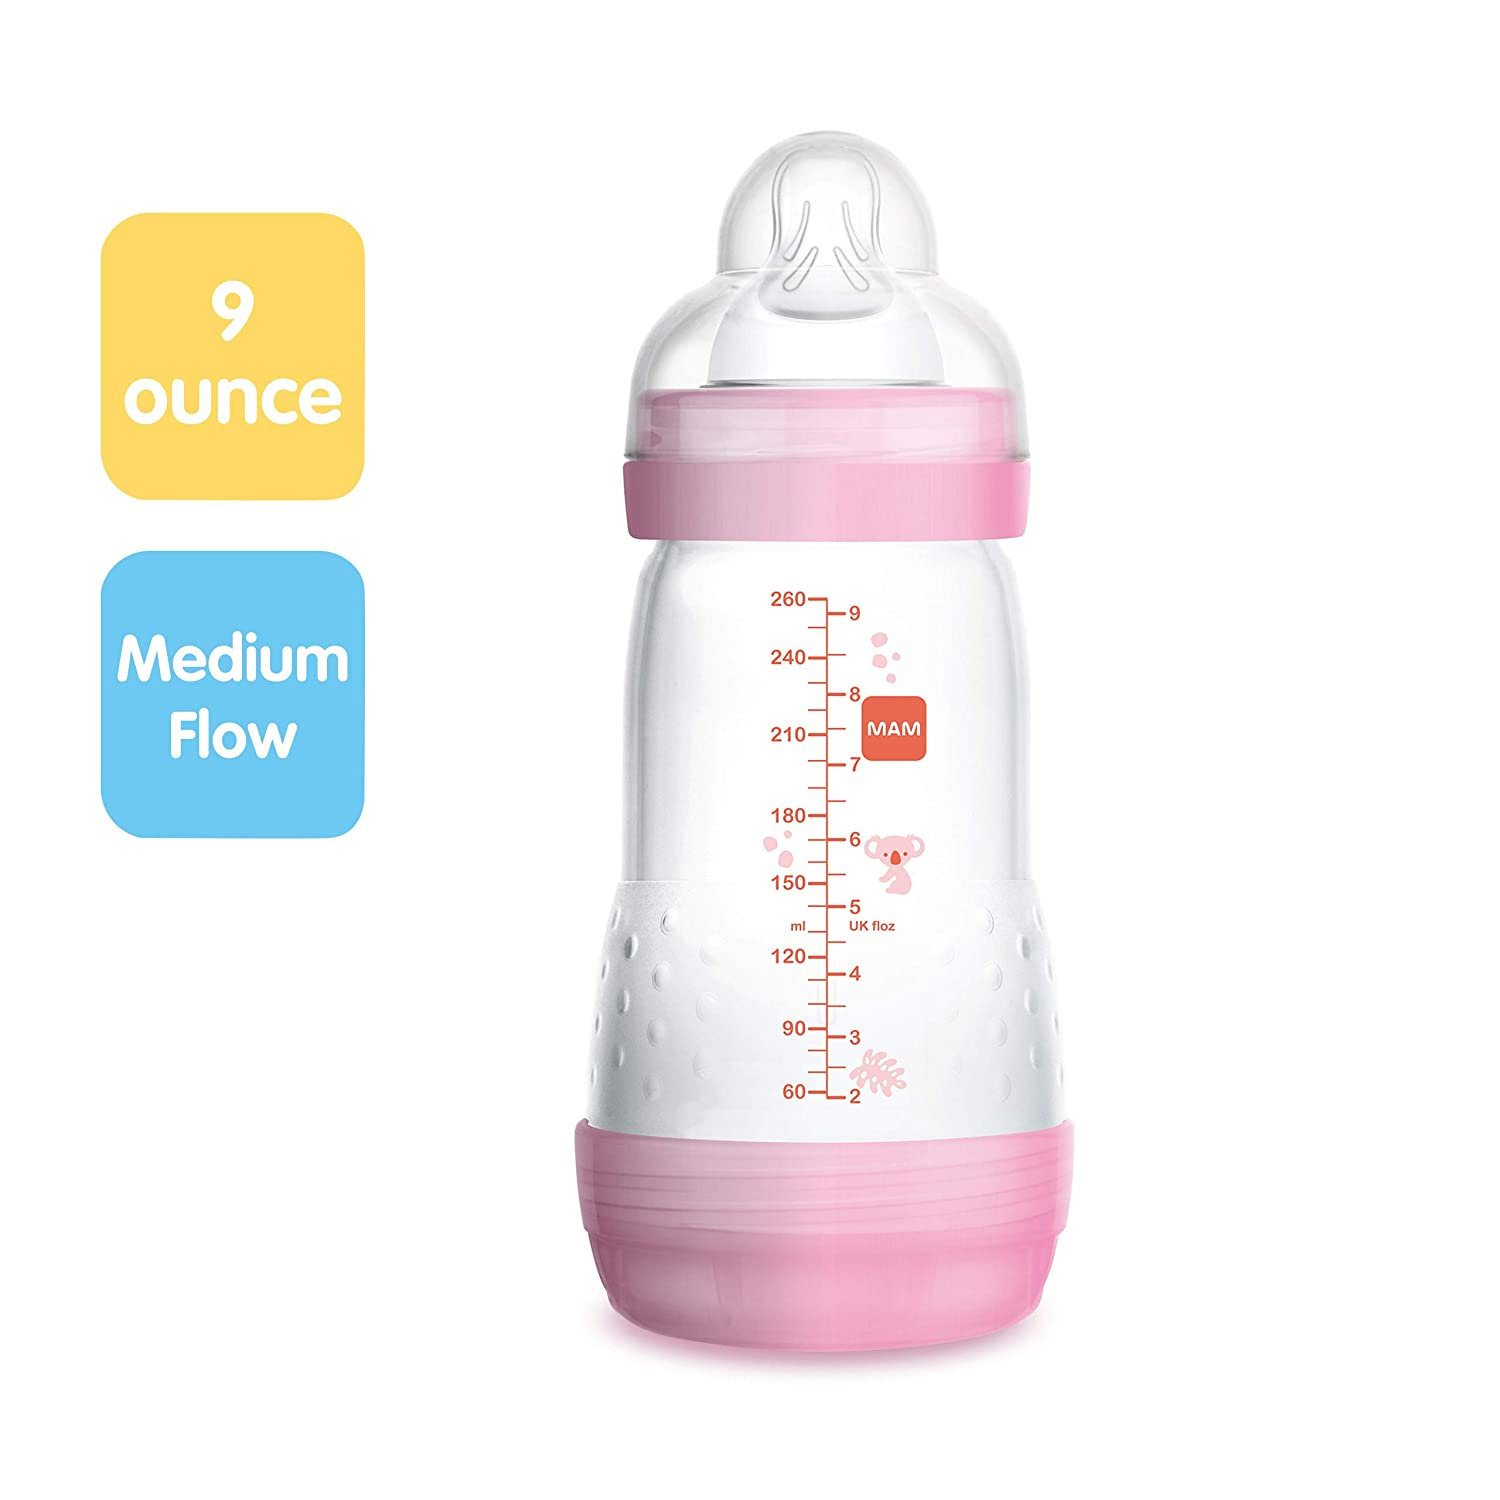 Baby Bottles for Baby Boy MAM Easy Start Anti-Colic Bottle 9 oz Medium Flow Bottles with Silicone Nipple 1-Count Blue Baby Essentials